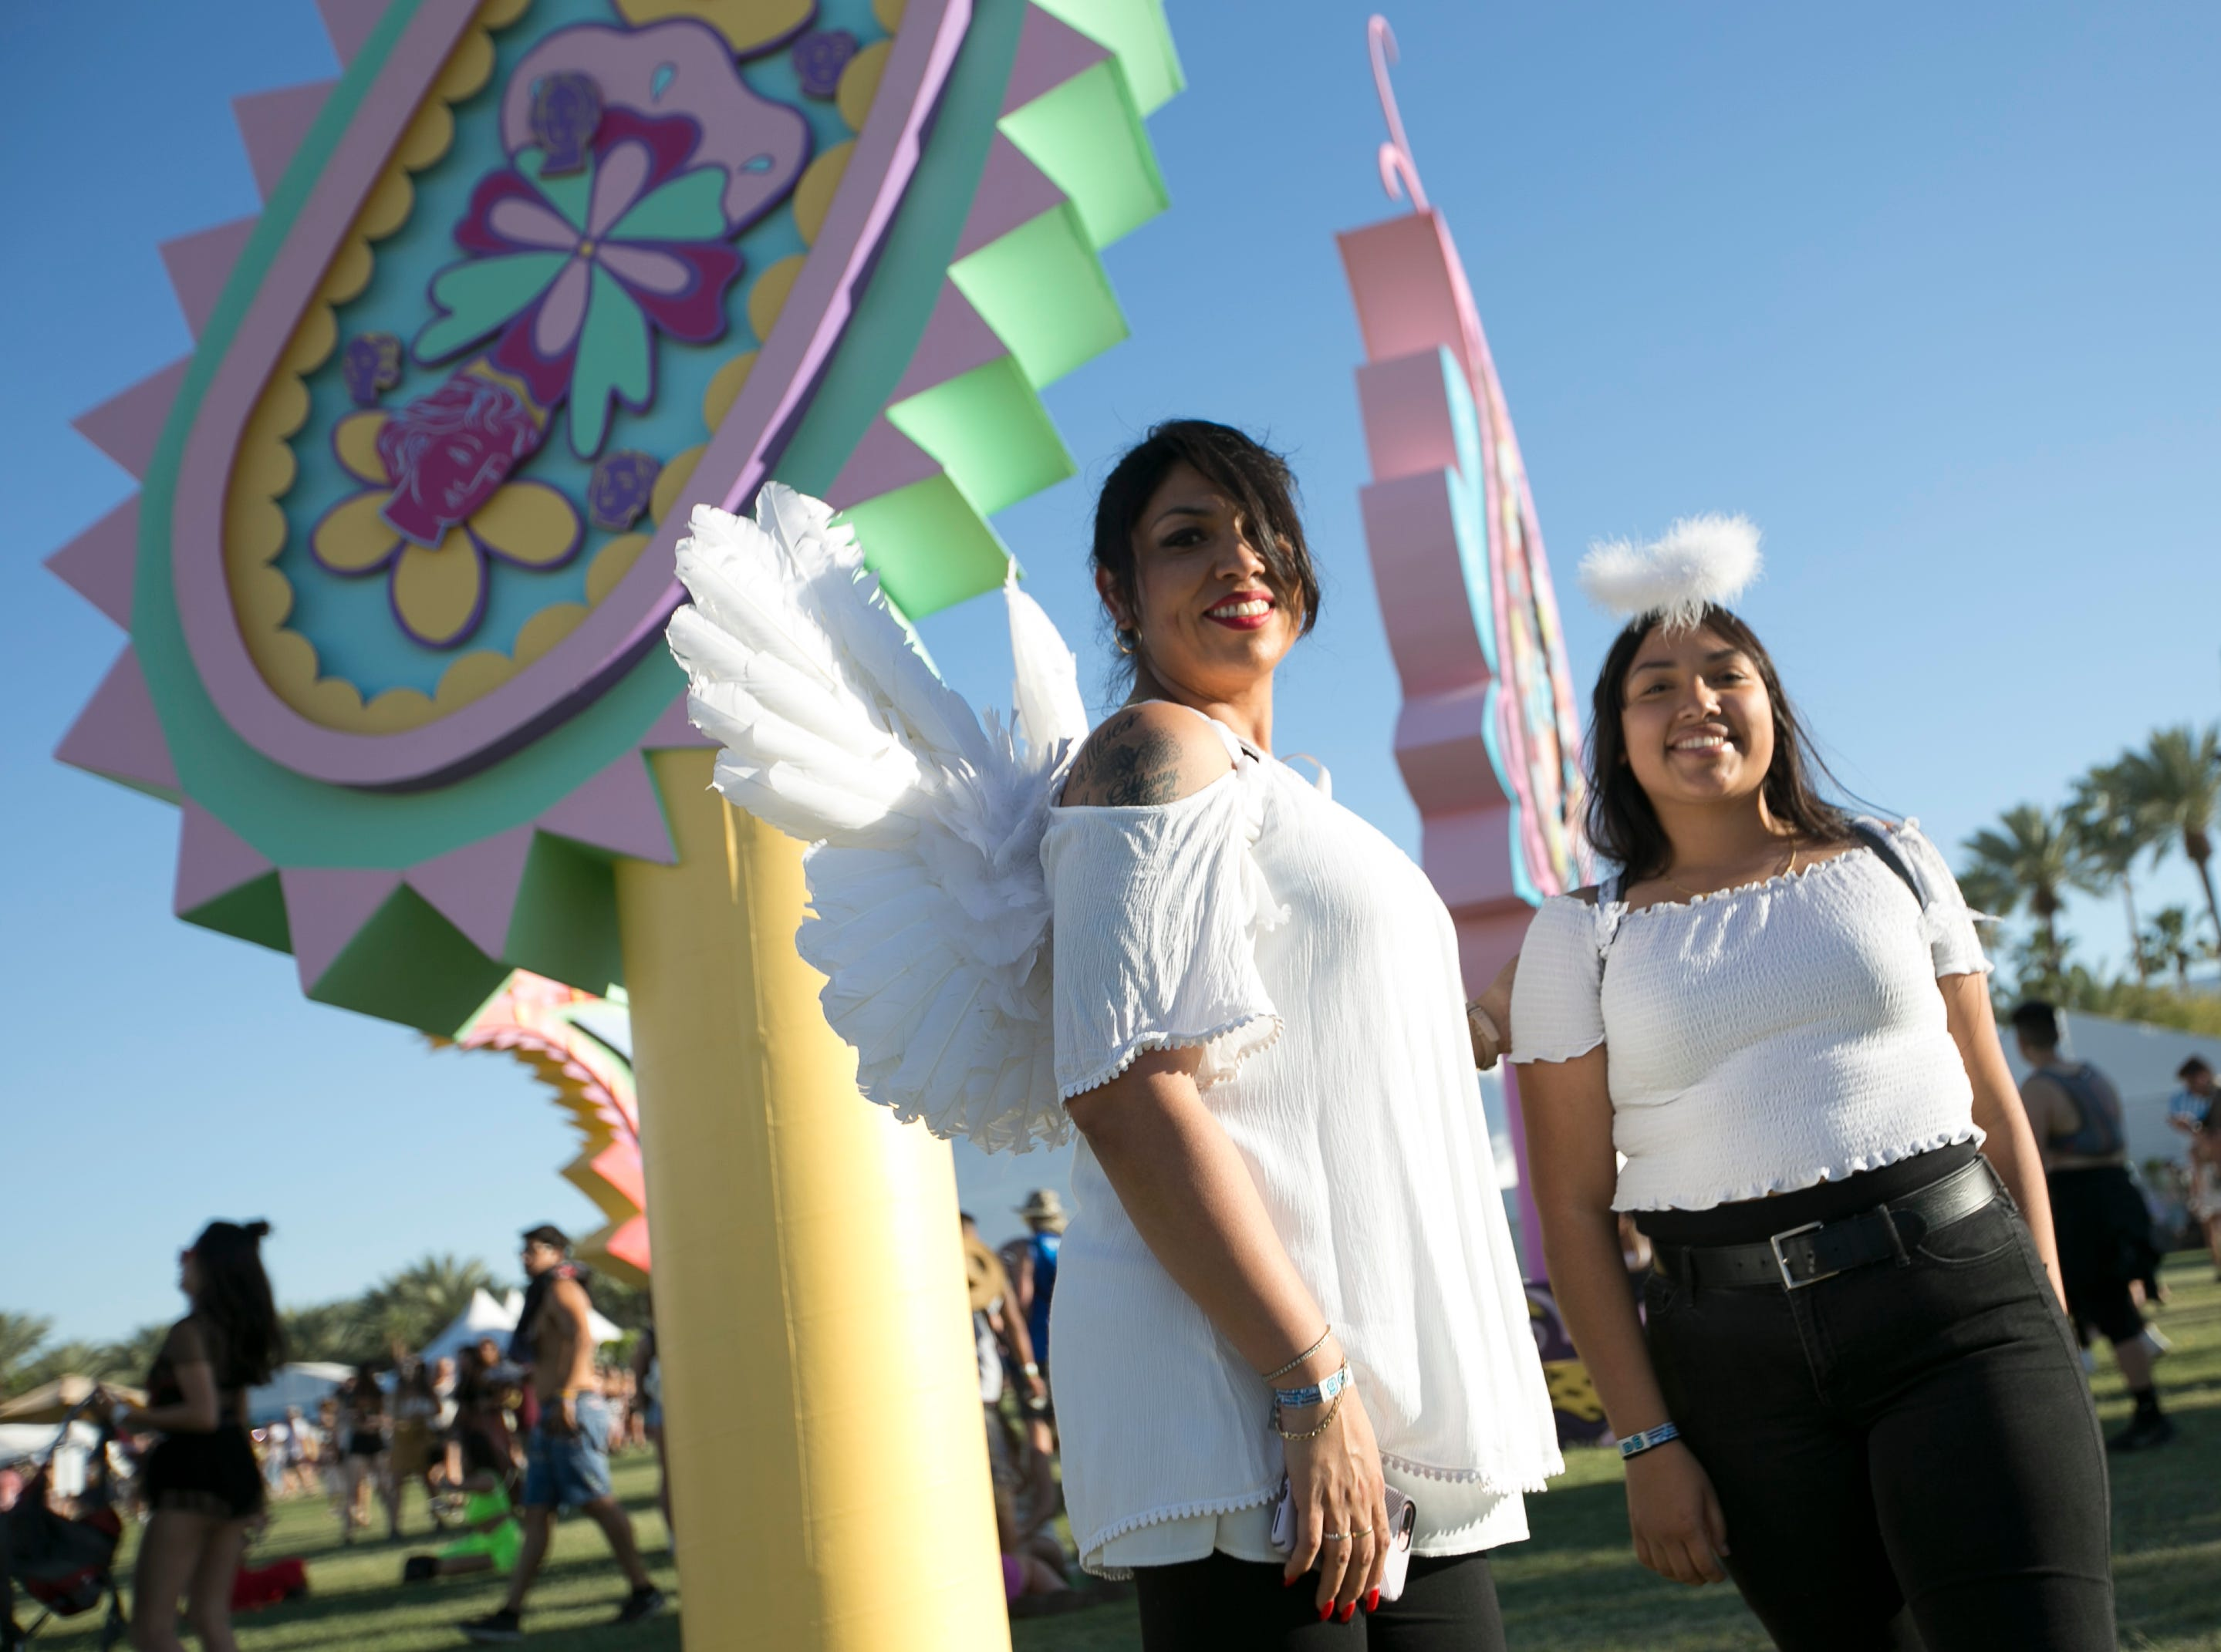 Laura Alvarez (left) and Oddessey Bustamante (right) pose in front of an art installation at Coachella 2019 in Indio, Calif. on Sat. April 13, 2019.